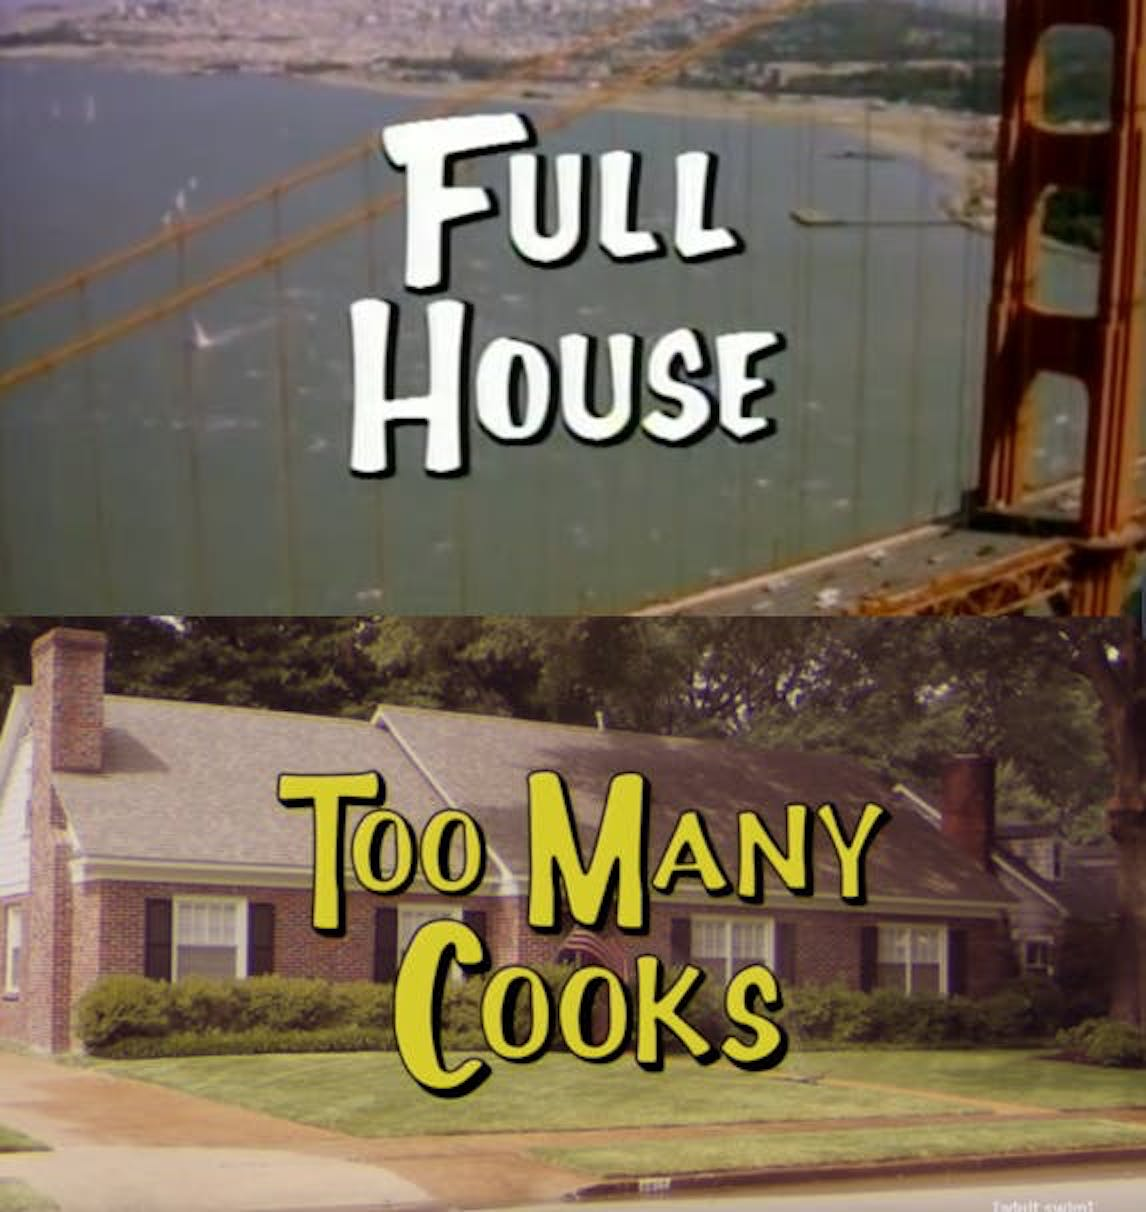 'Too Many Cooks' 'Full House'